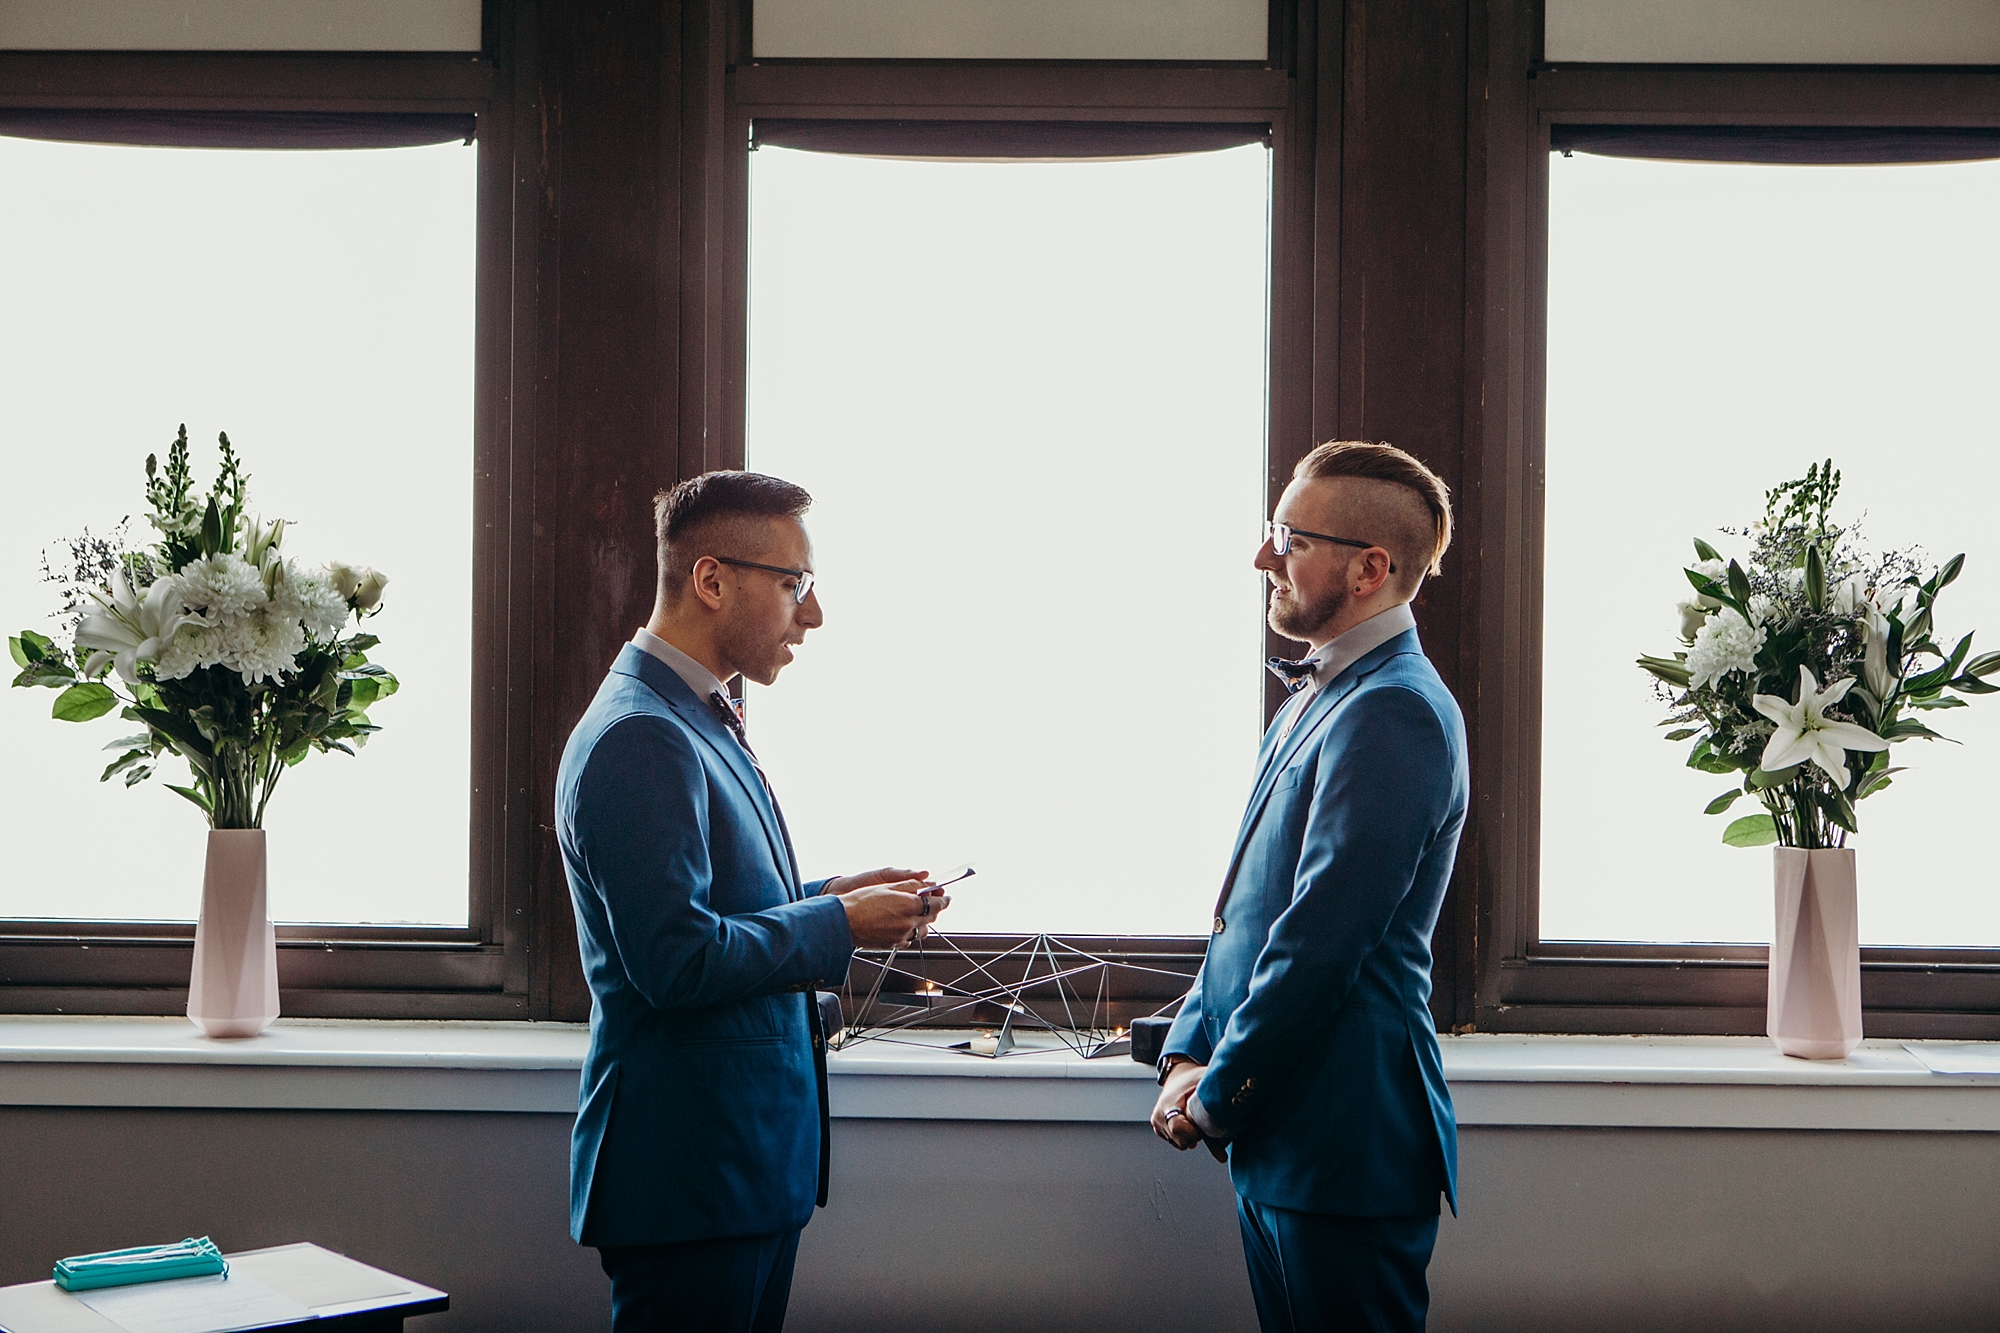 Joe_Mac_Creative_Philadelphia_Philly_LGBT_Gay_Engagement_Wedding_Photography__0069.jpg